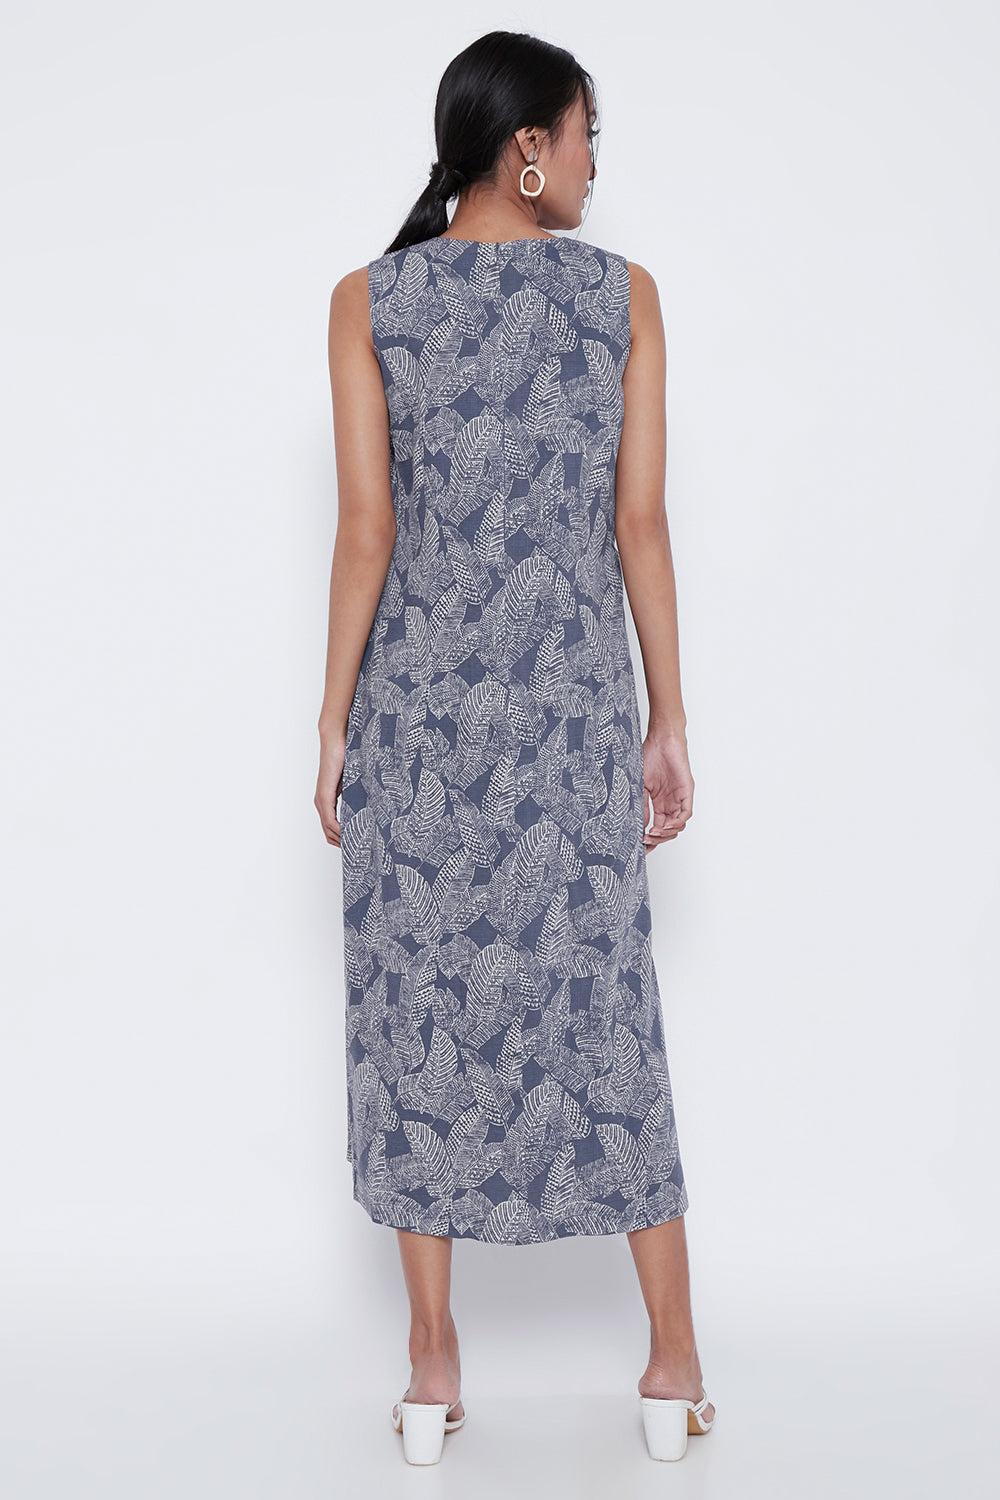 Aleta Dress in Blue